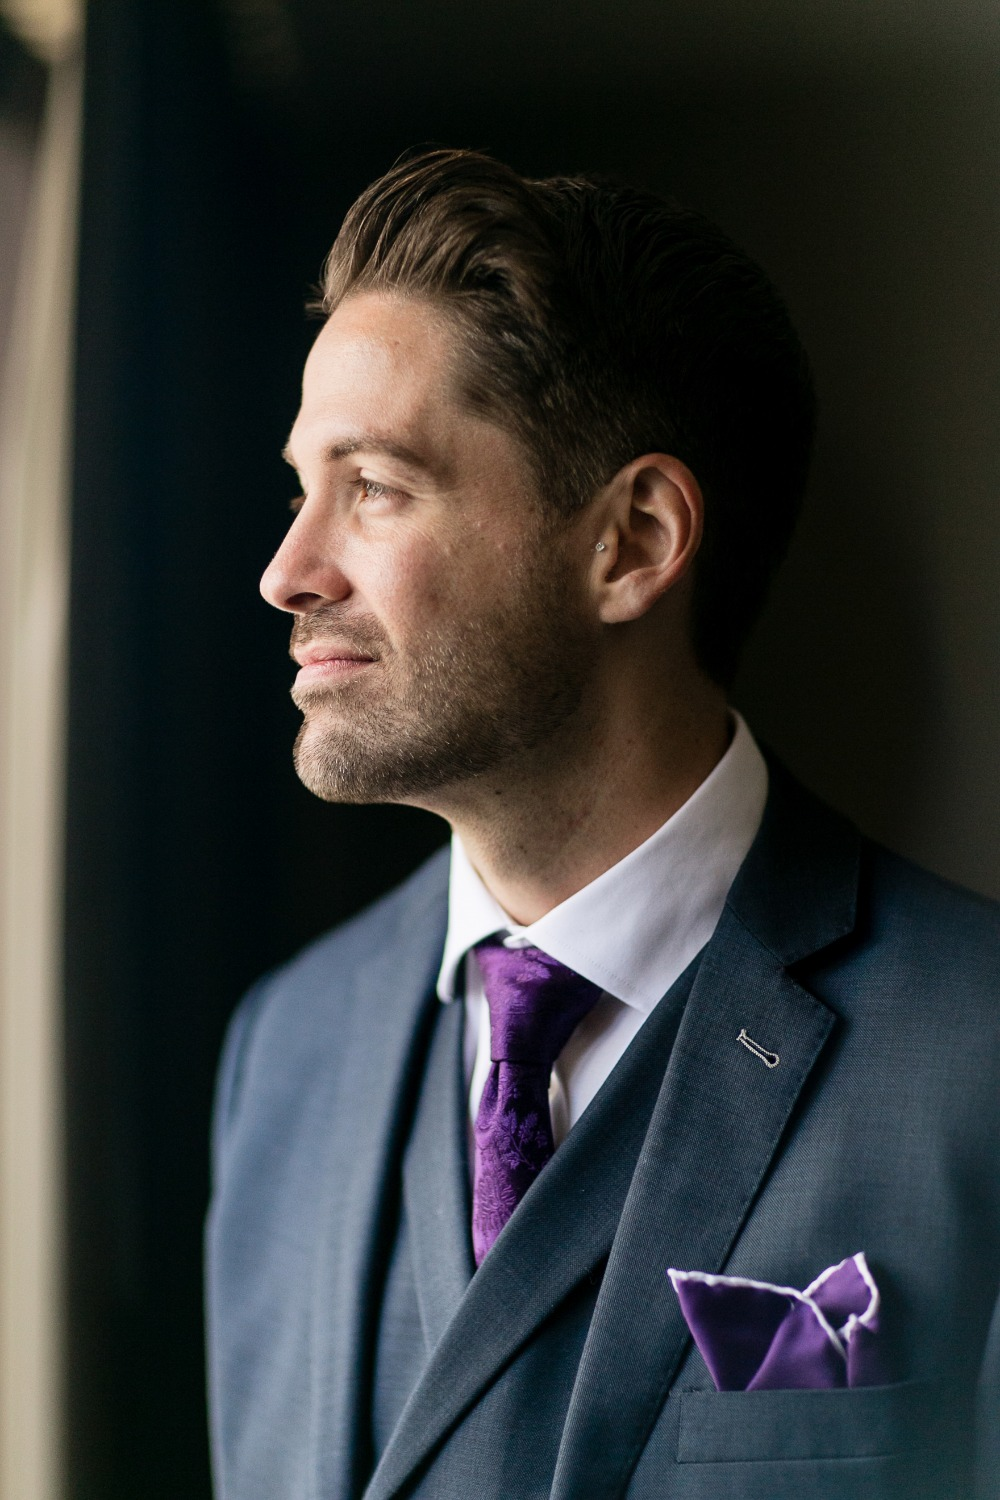 Groom in navy and purple